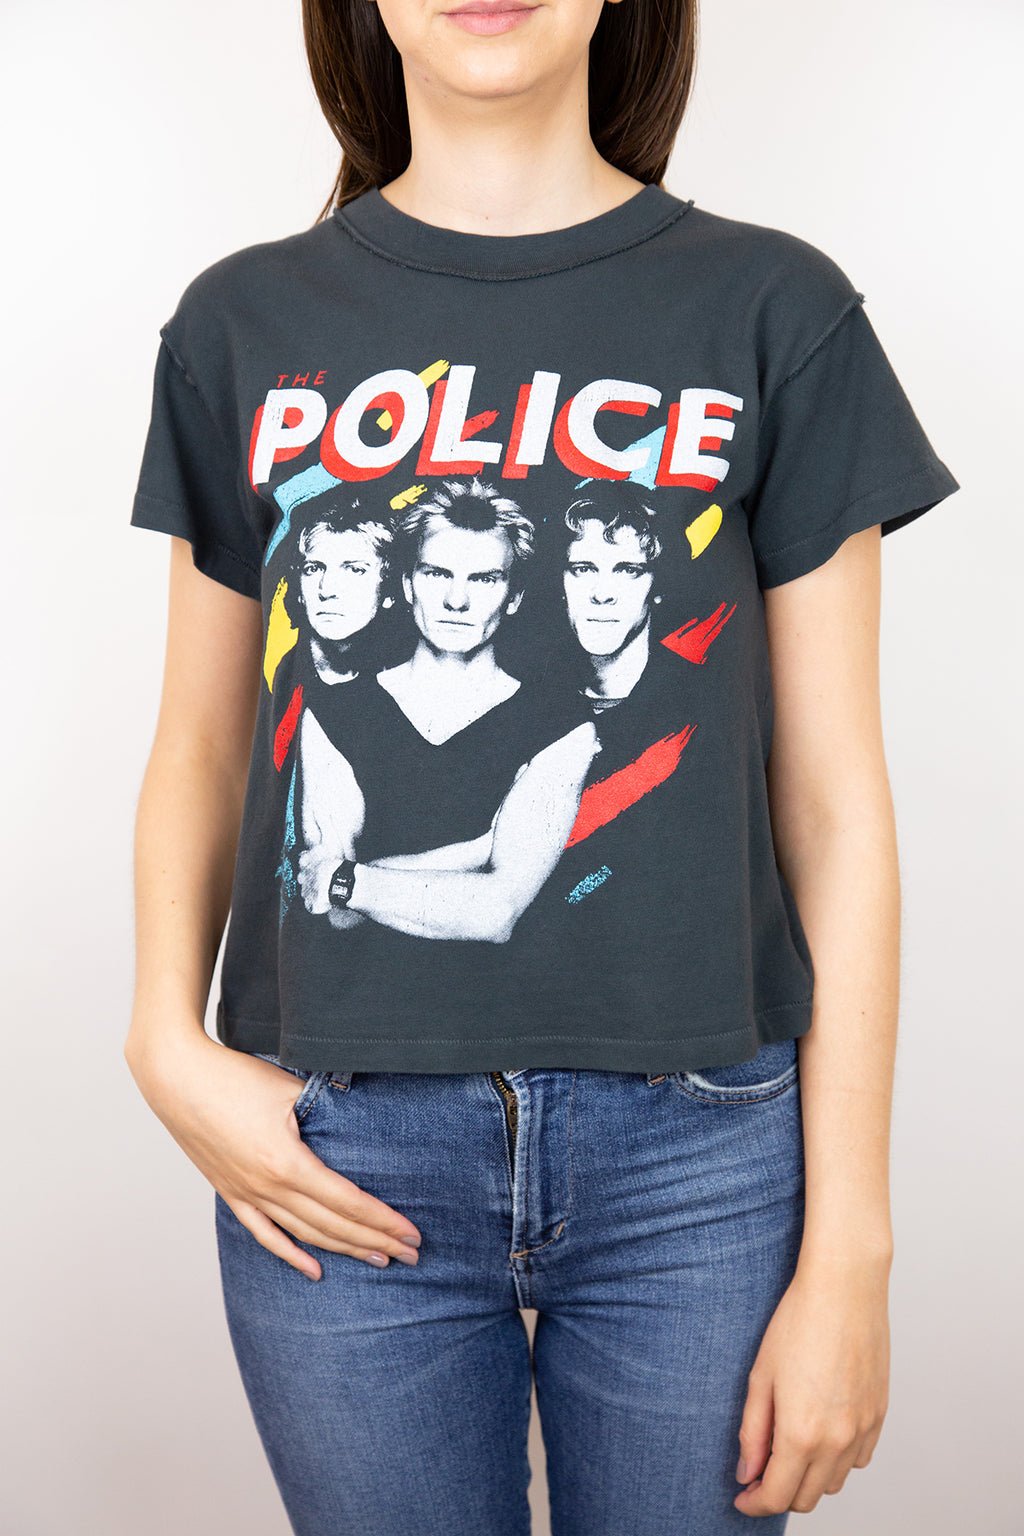 The Police Painted Tee